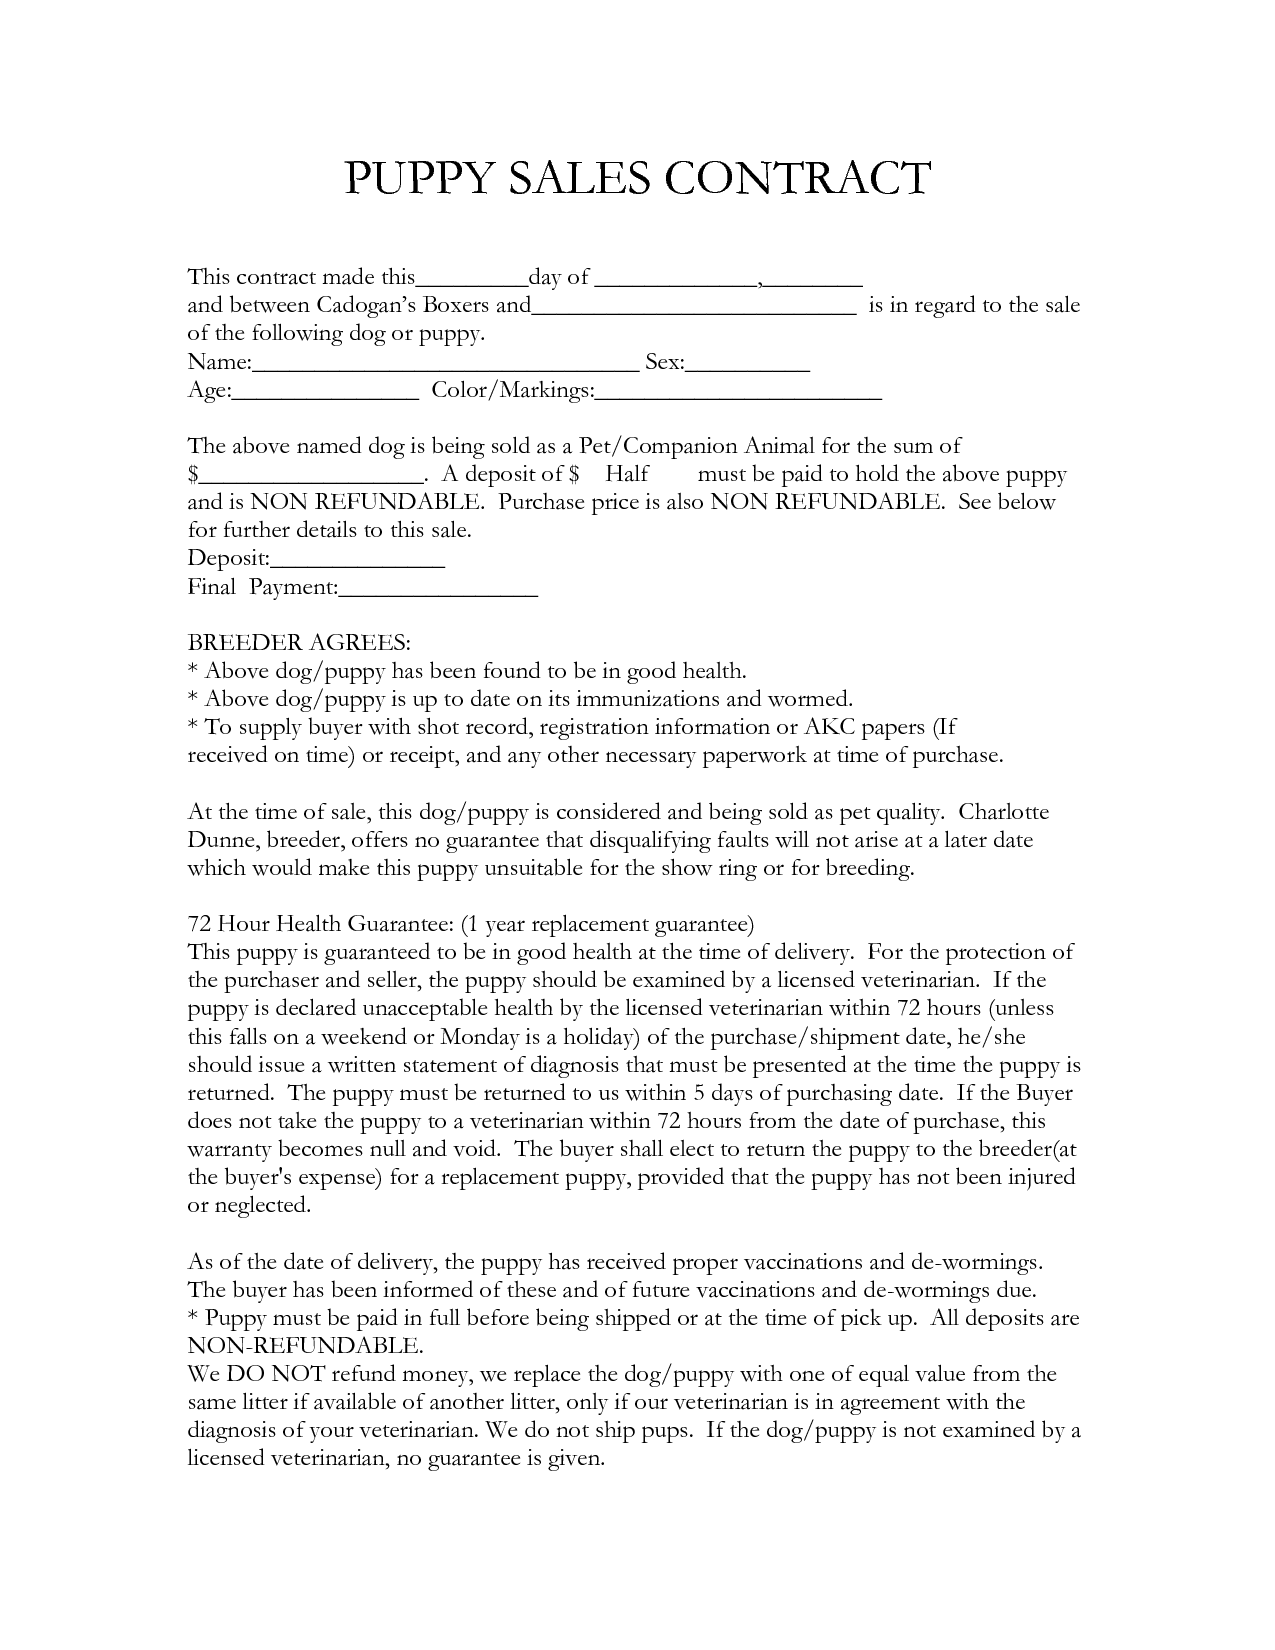 Contract Template | Free Microsoft Word Templates. Sale Contract  Free Sales Contract Template